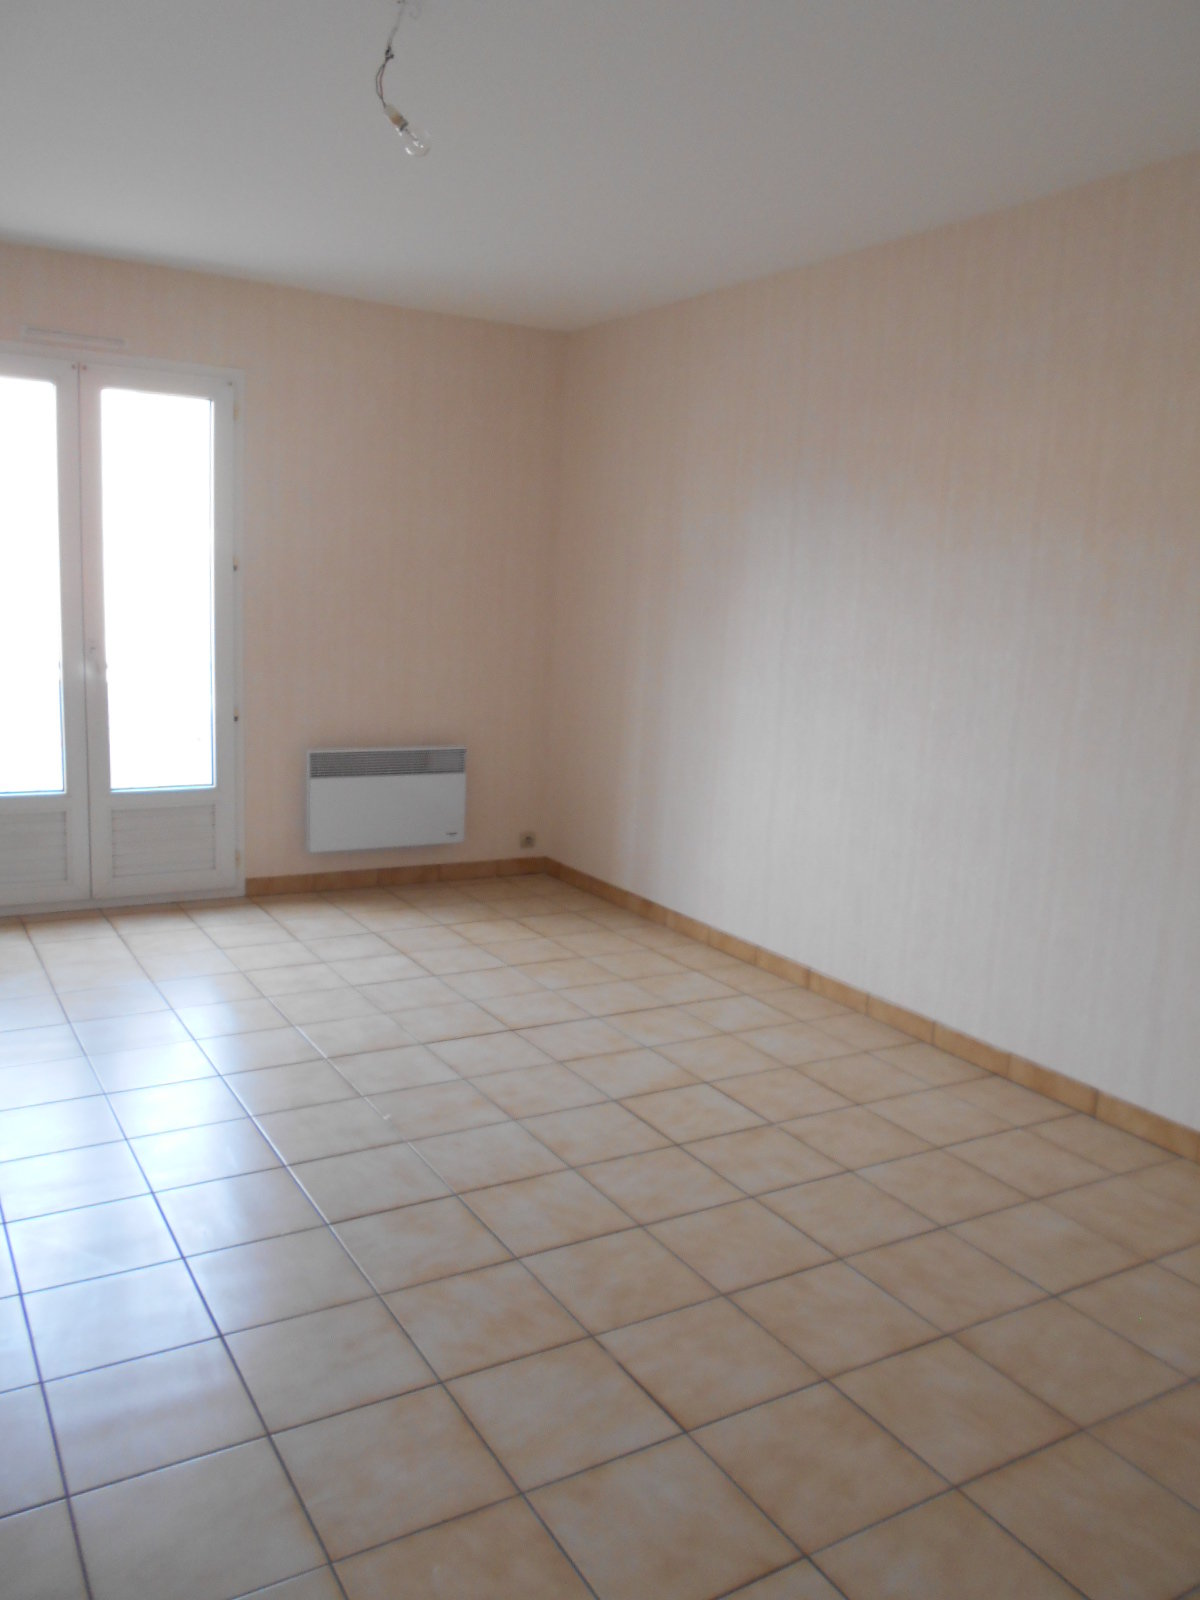 Appartement Thouars - 2 Pièce(s) - 56 M2